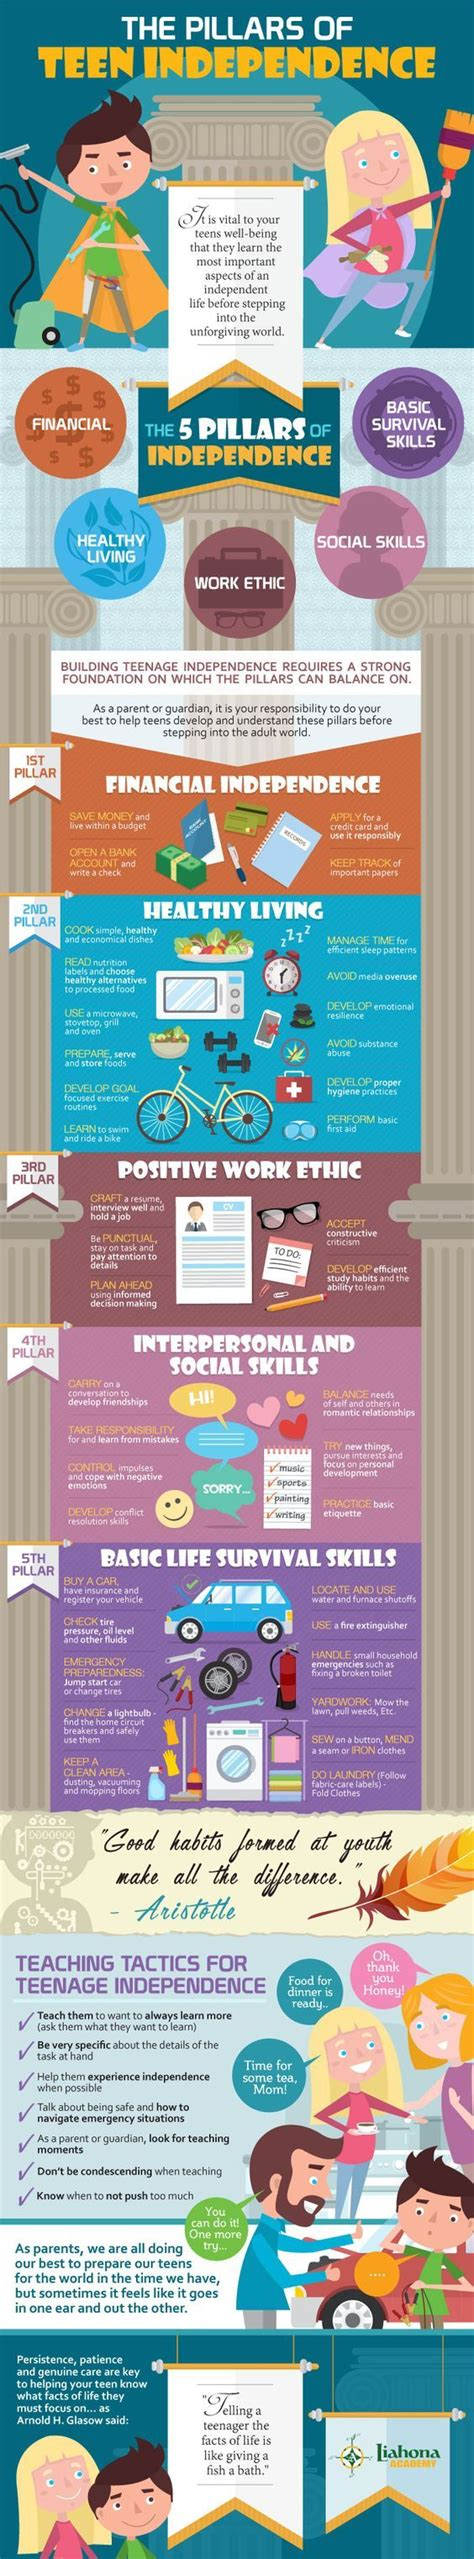 Teen Independence And Its 5 Pillars Infographic